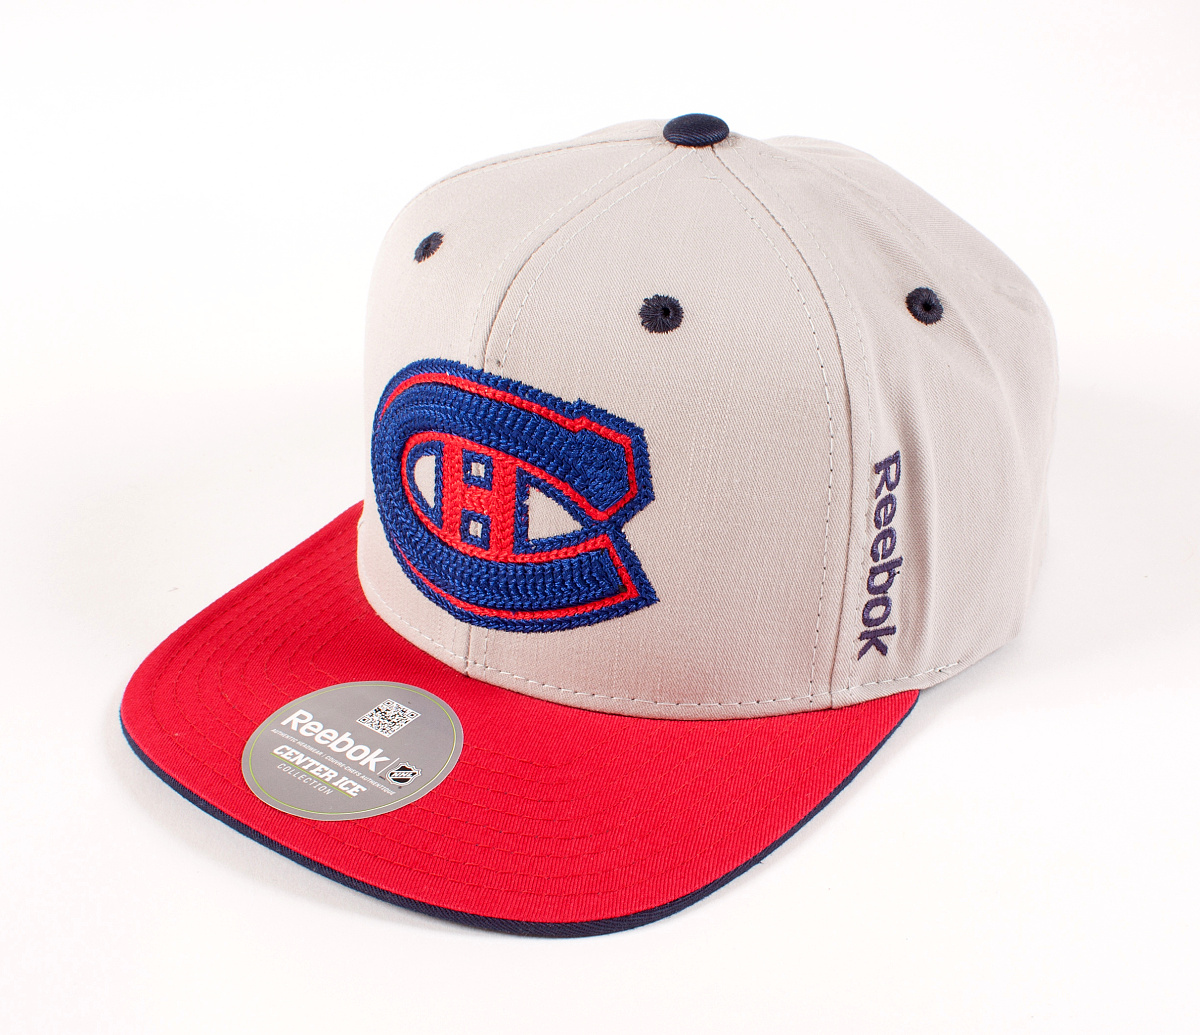 KŠILTOVKA REEBOK CENTER ICE SNAPBACK SR